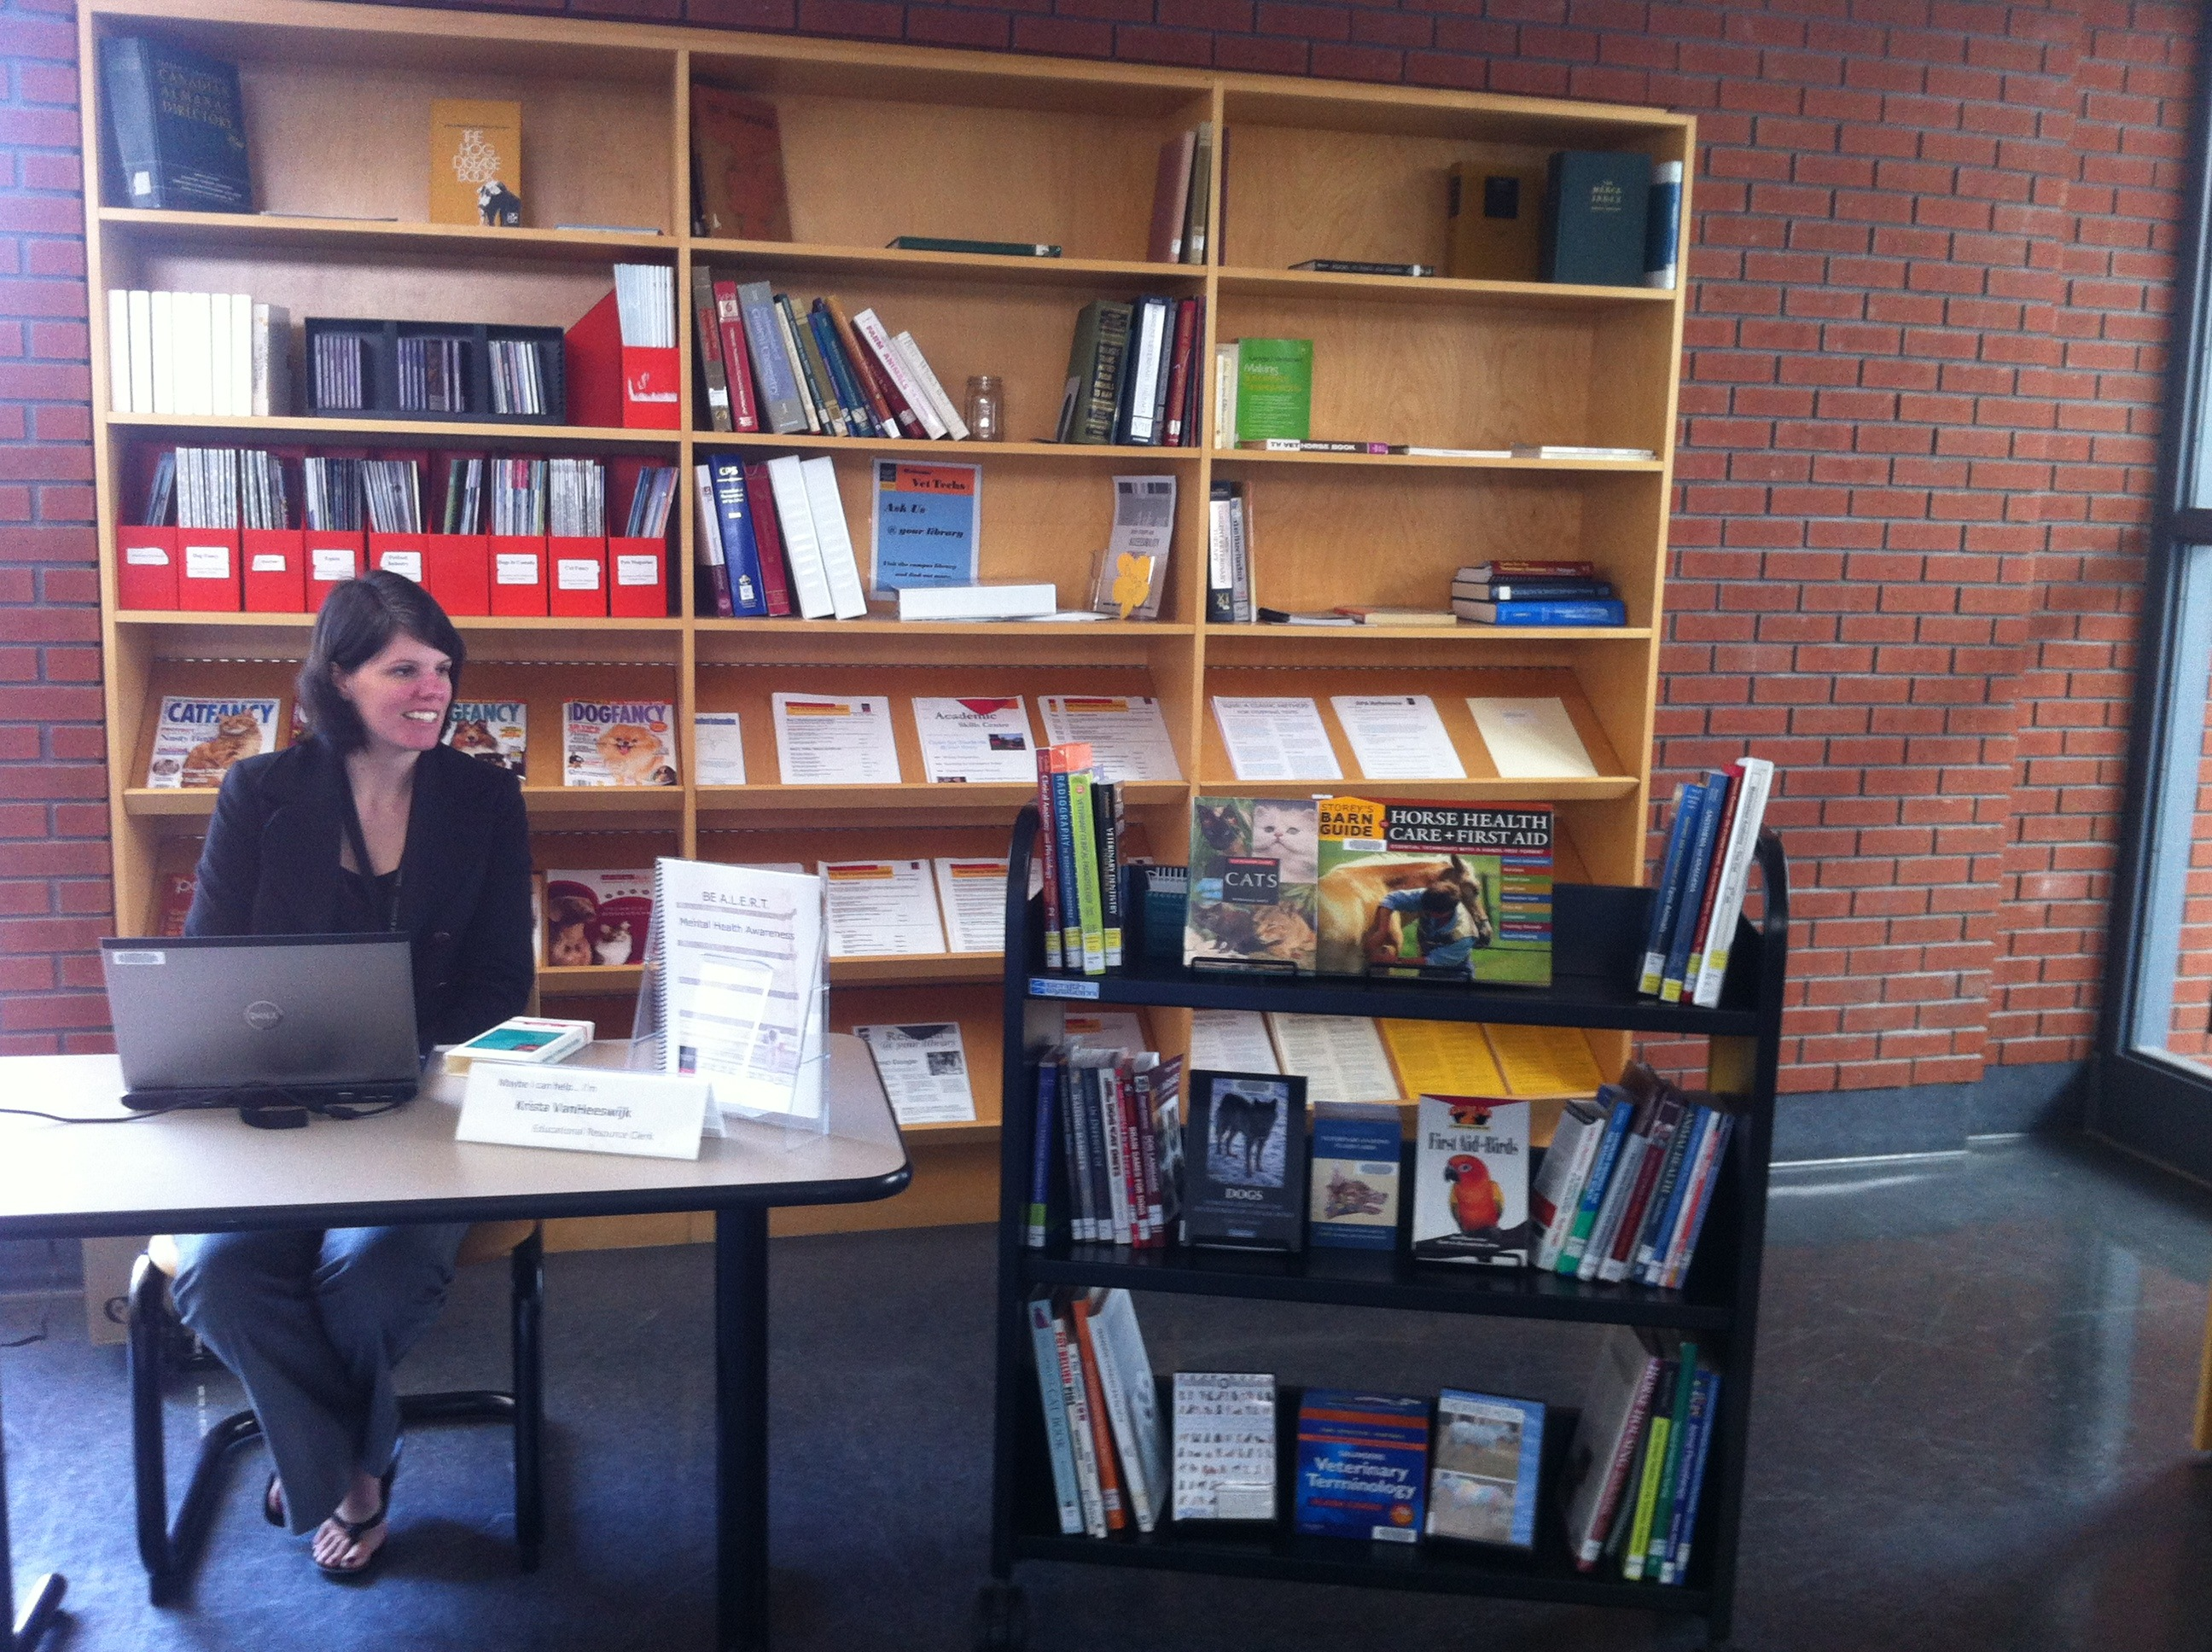 Krista van Heeswijk staffing the Pop-Up Library at Ridgetown Campus, UG